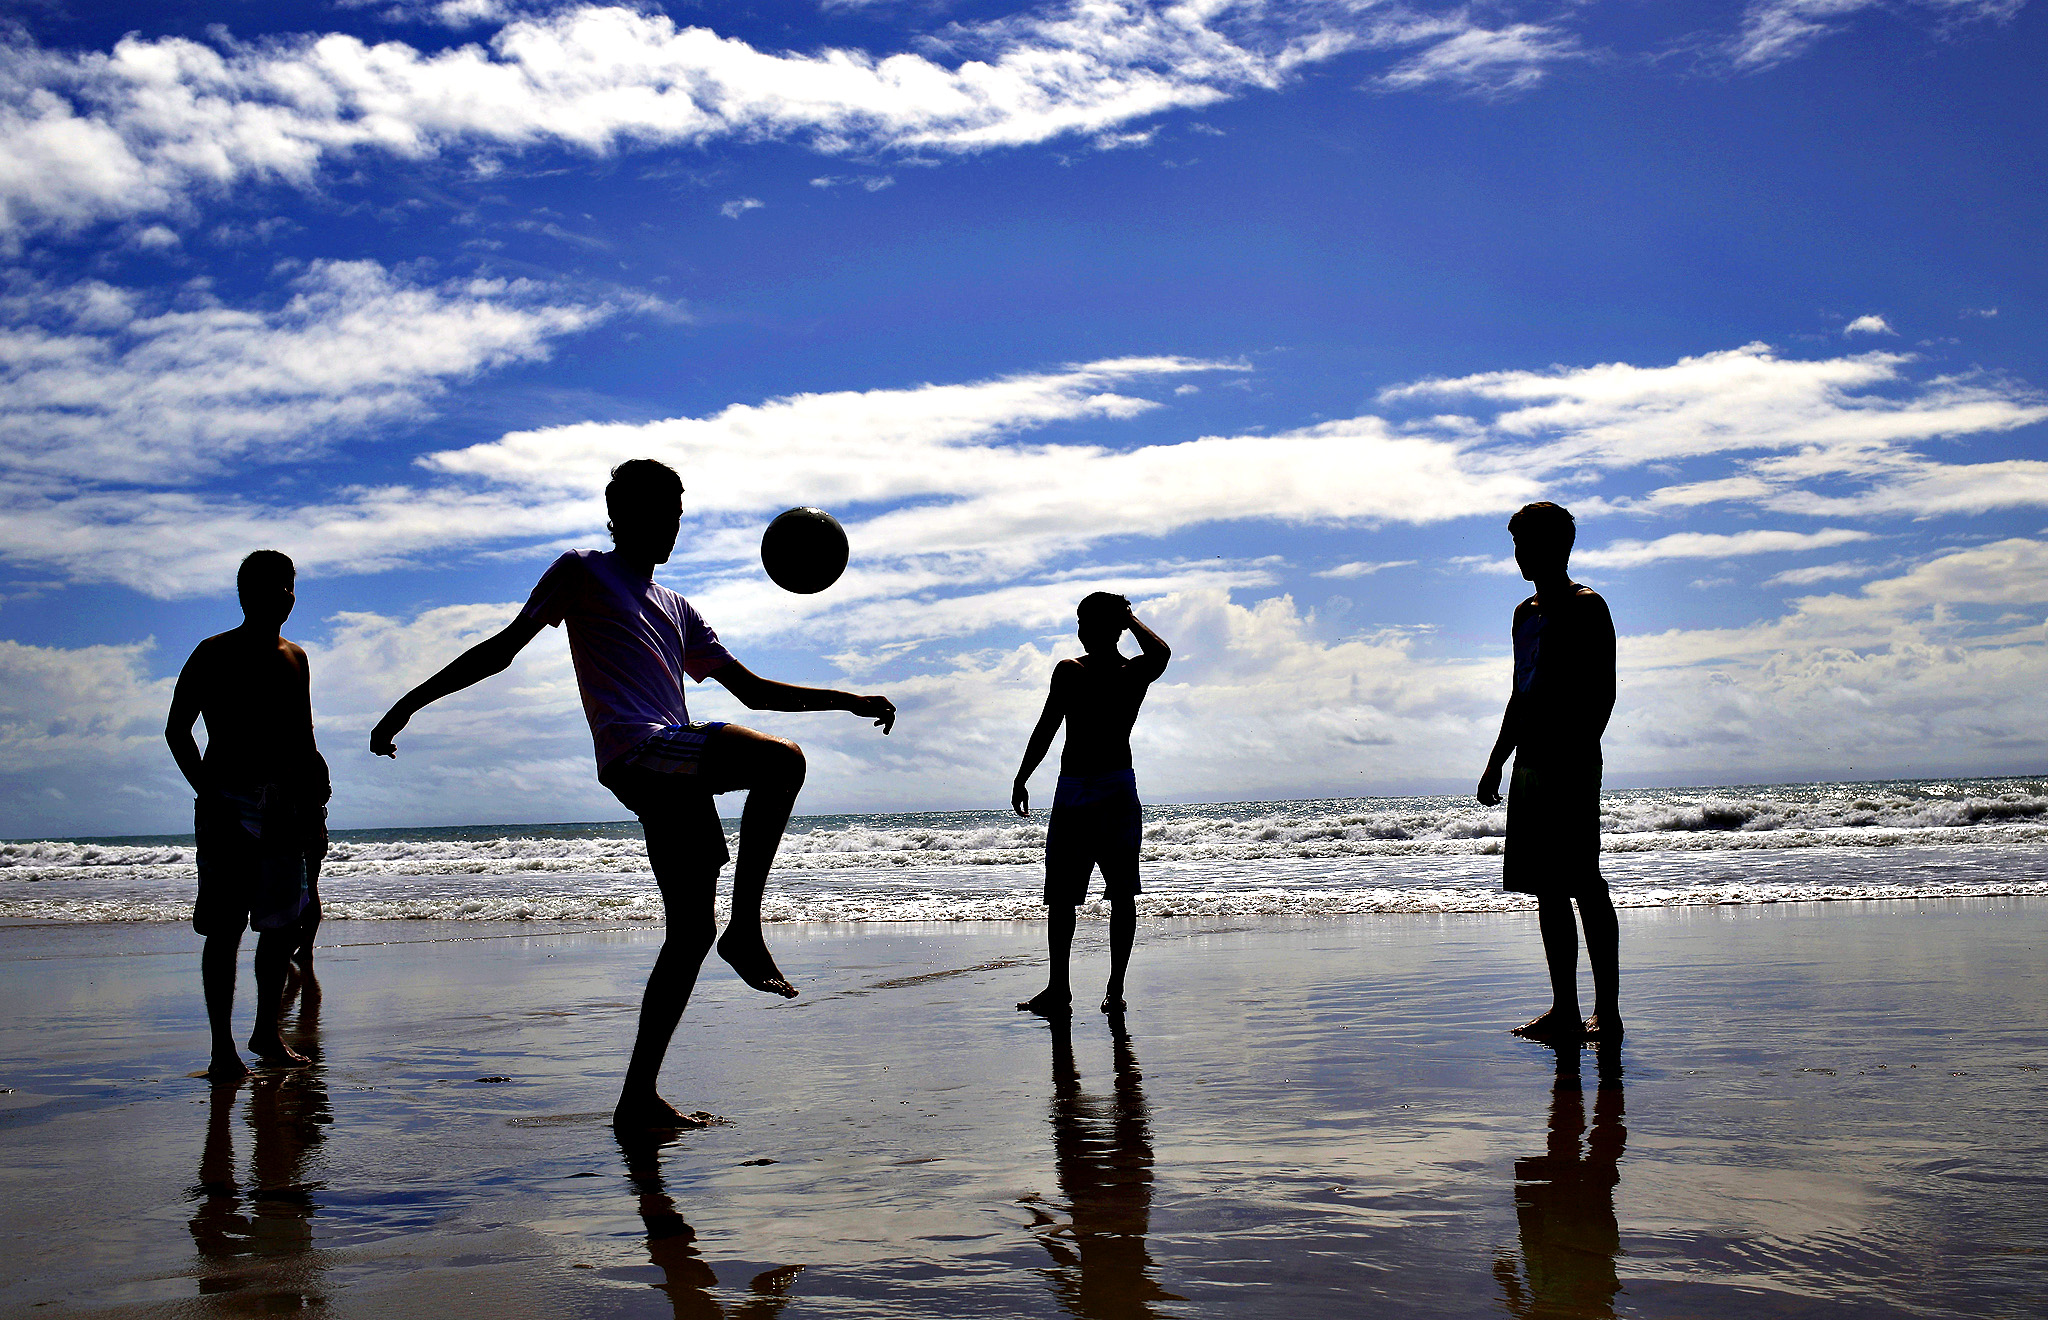 Residents and tourists play soccer on Ponta Negra beach in Natal, Brazil, Wednesday, June 25, 2014. Natal is one of many cities hosting the World Cup soccer tournament this month